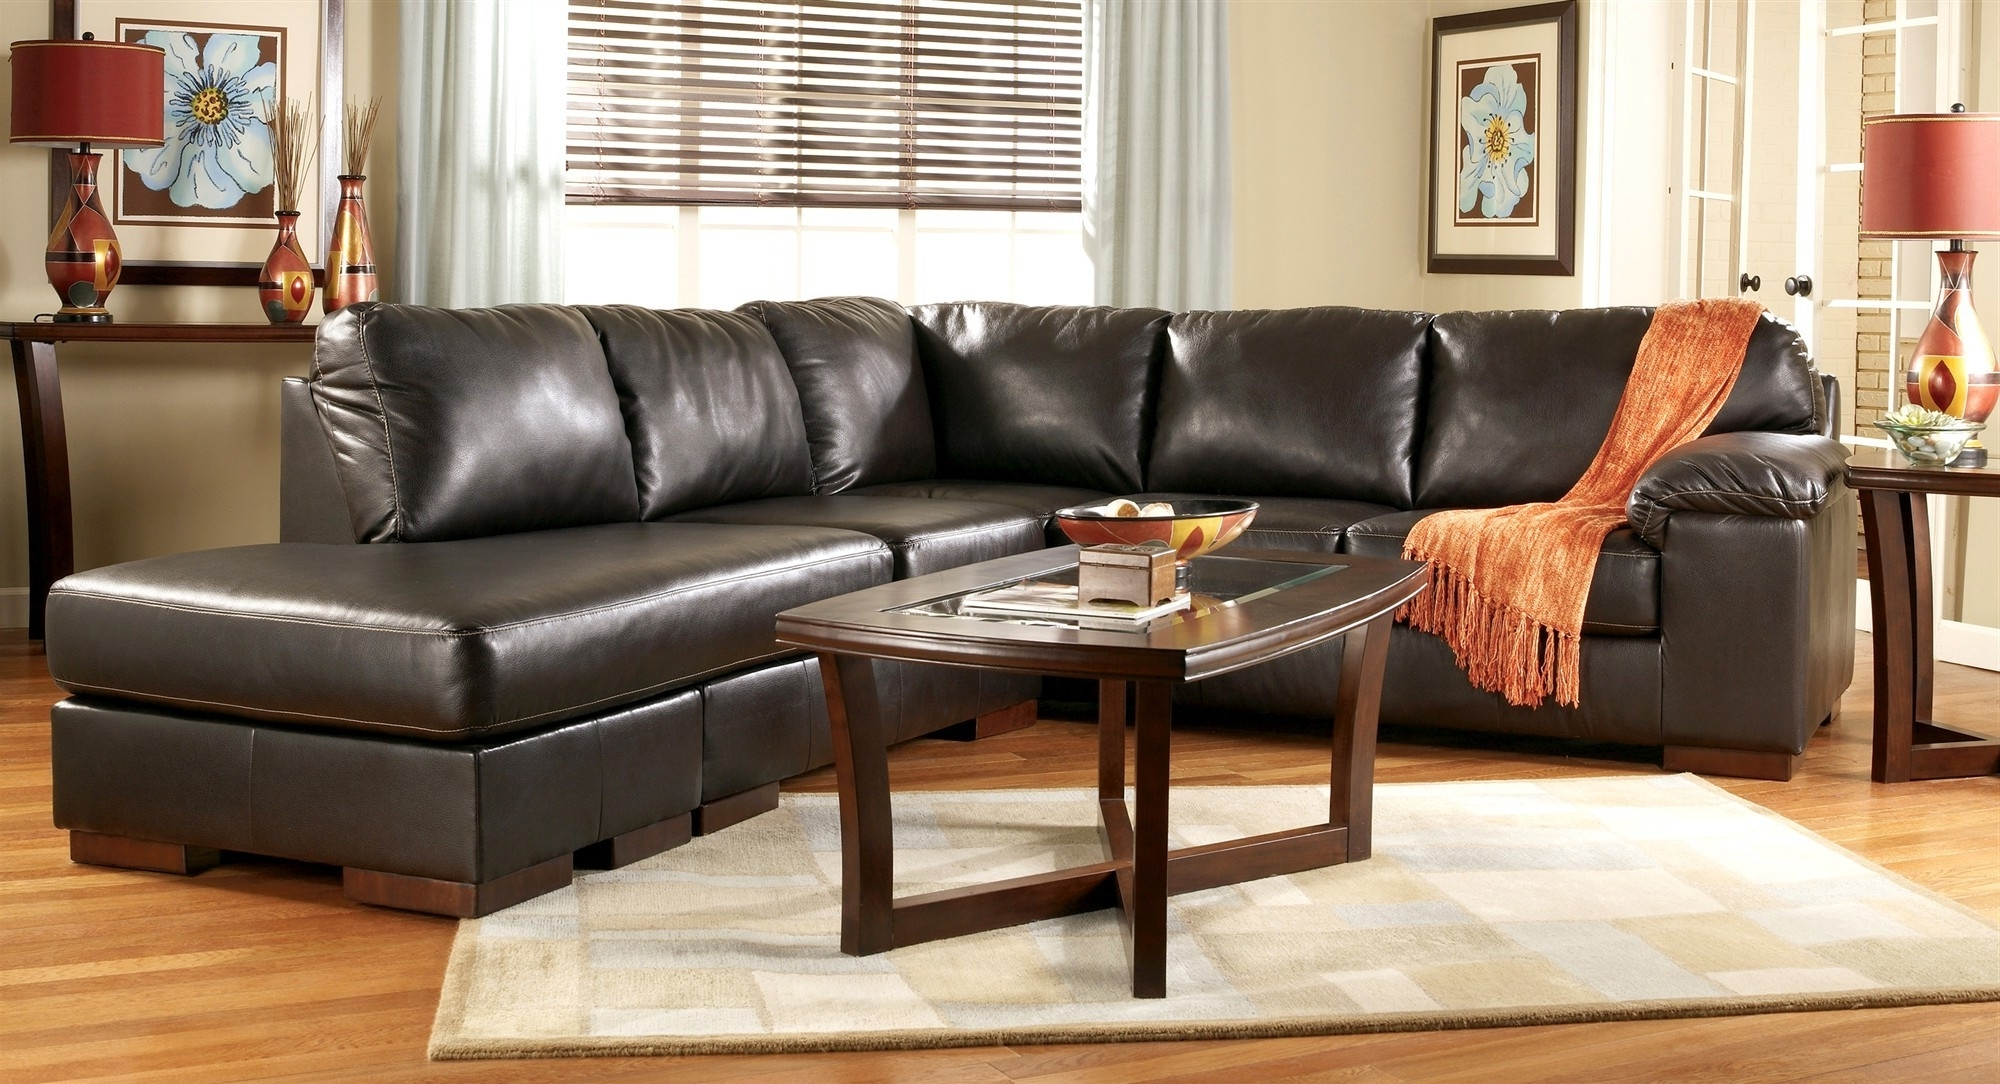 Faux Leather Sectional Sofas Best Of Fancy Green Sectional Sofa Within Popular Green Sectional Sofas With Chaise (View 15 of 20)